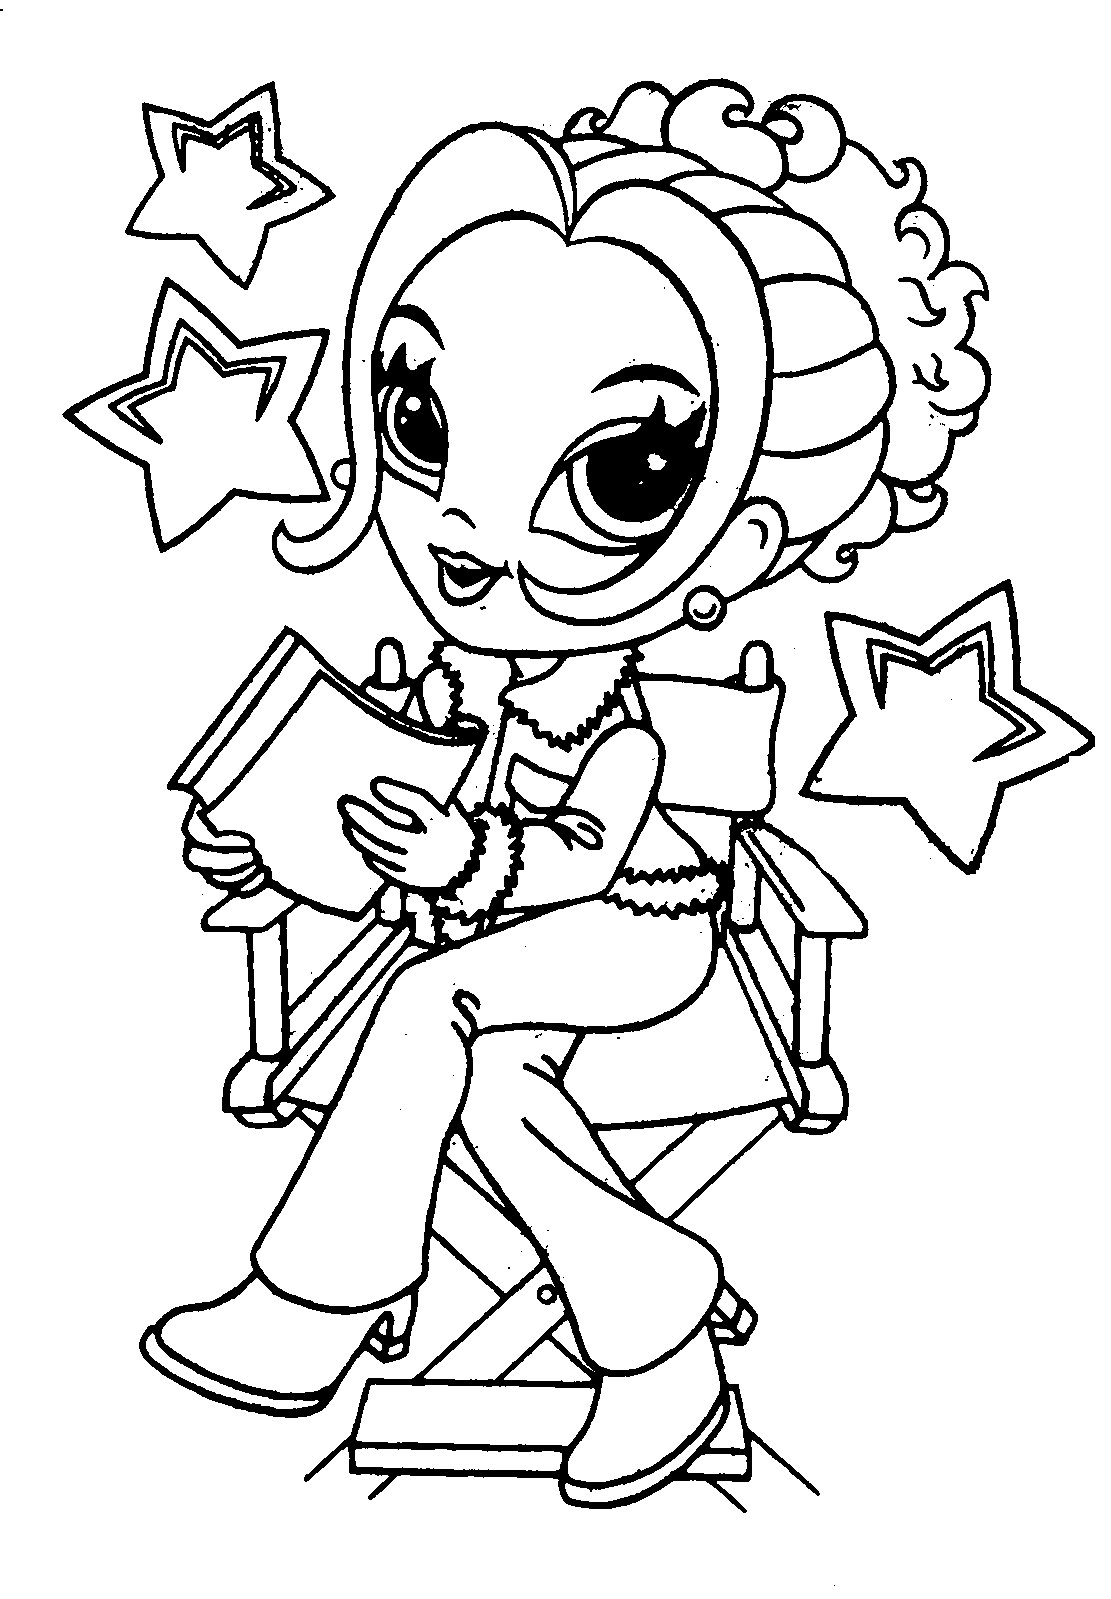 lisa frank free coloring pages - photo#15